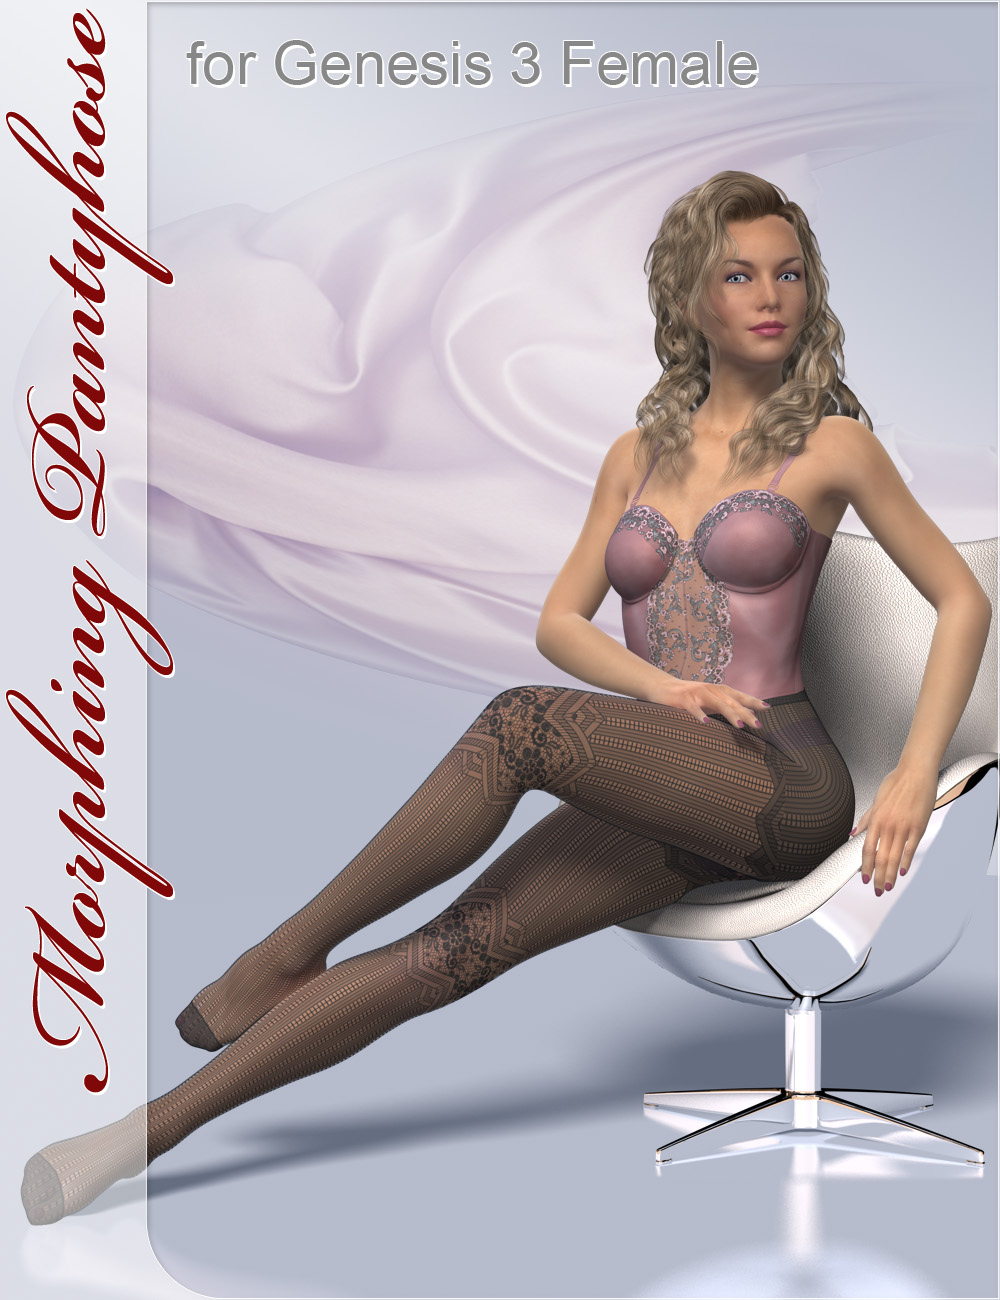 Morphing Pantyhose for Genesis 3 and 8 Female(s) by: CJ-Studio, 3D Models by Daz 3D